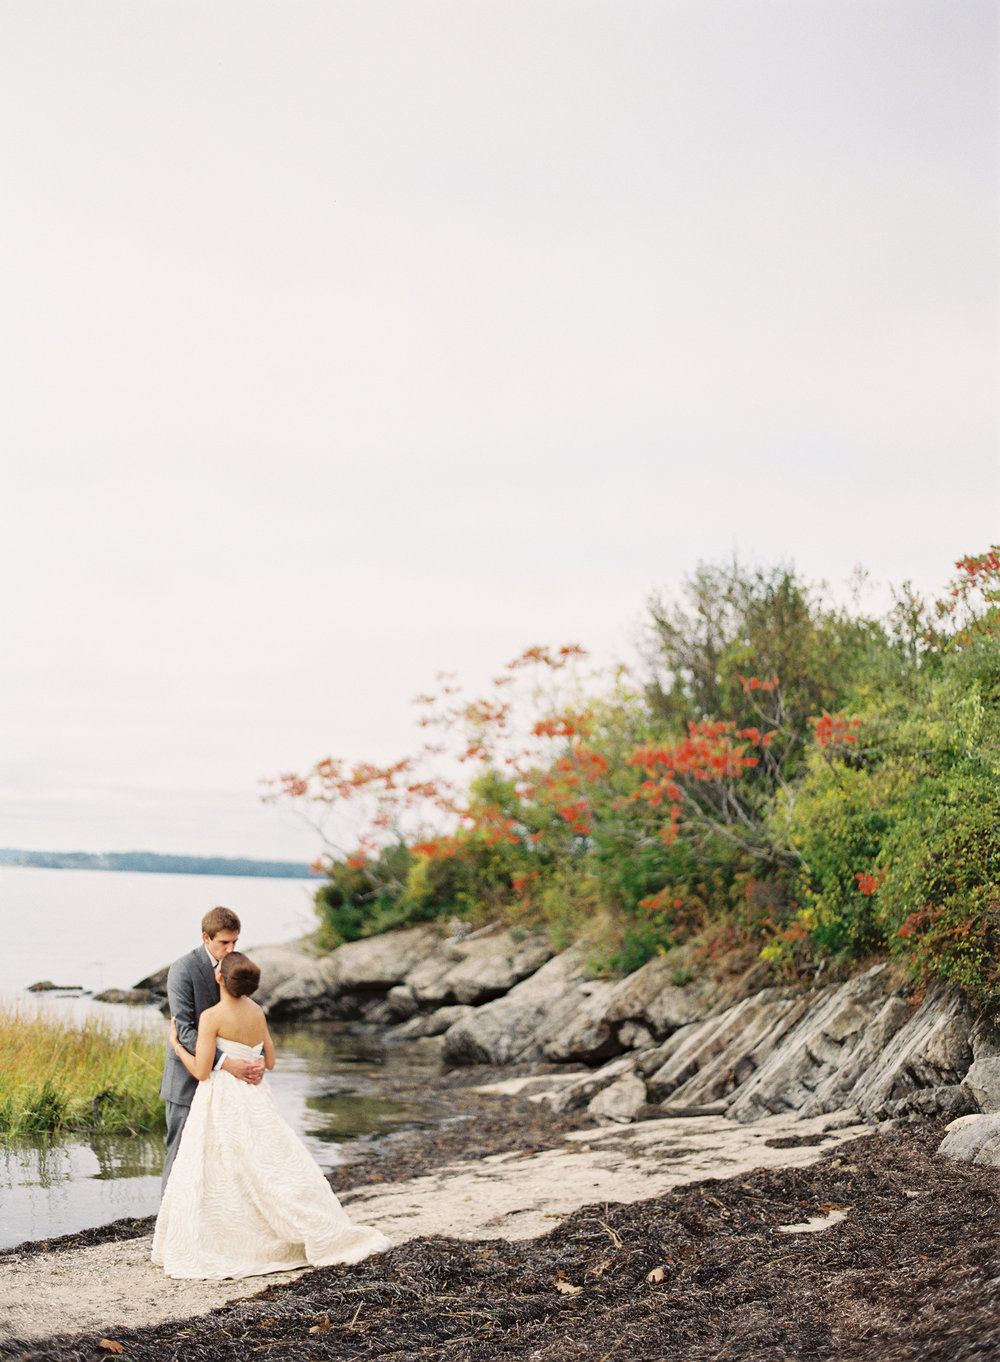 chebeague_island_inn_wedding_gabe_aceves023.JPG